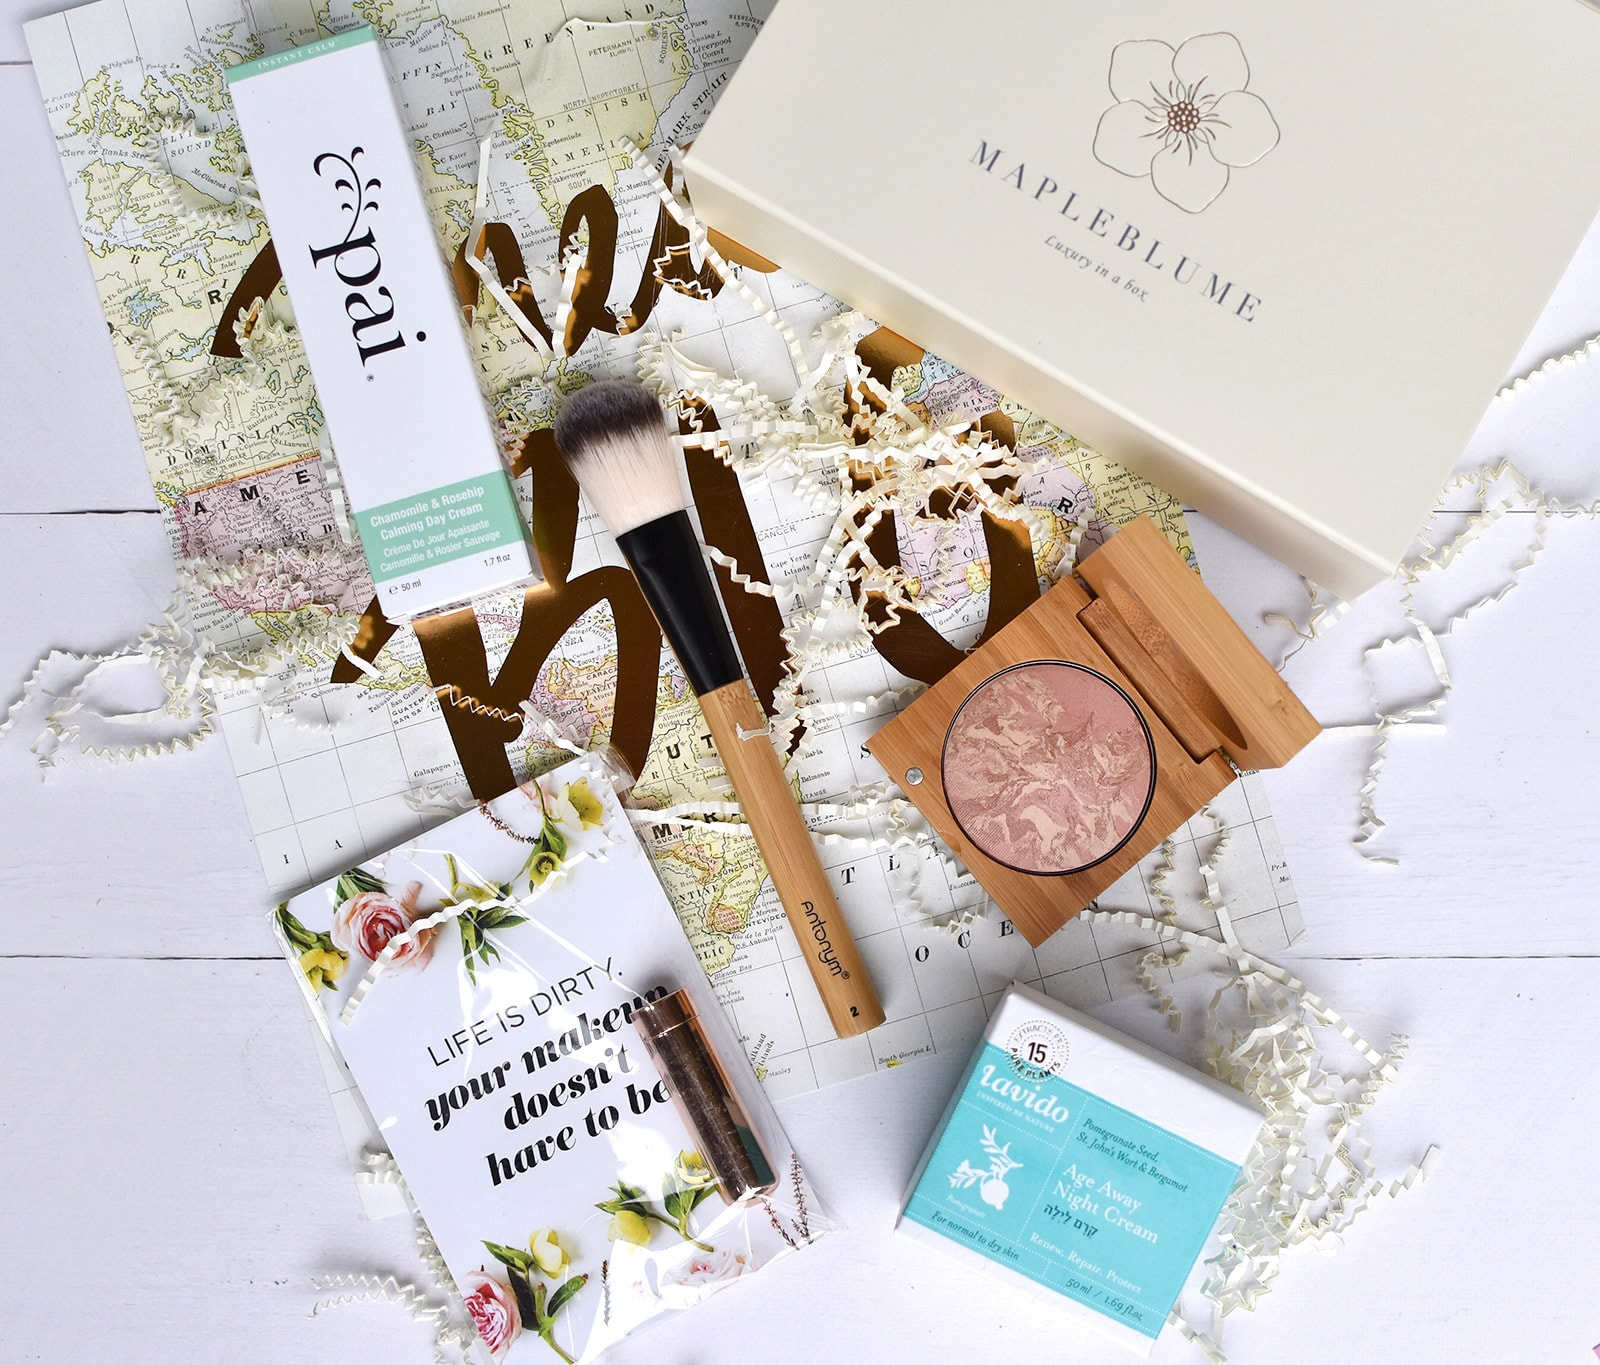 Mapleblume | February 2018 Review (And Giveaway!)